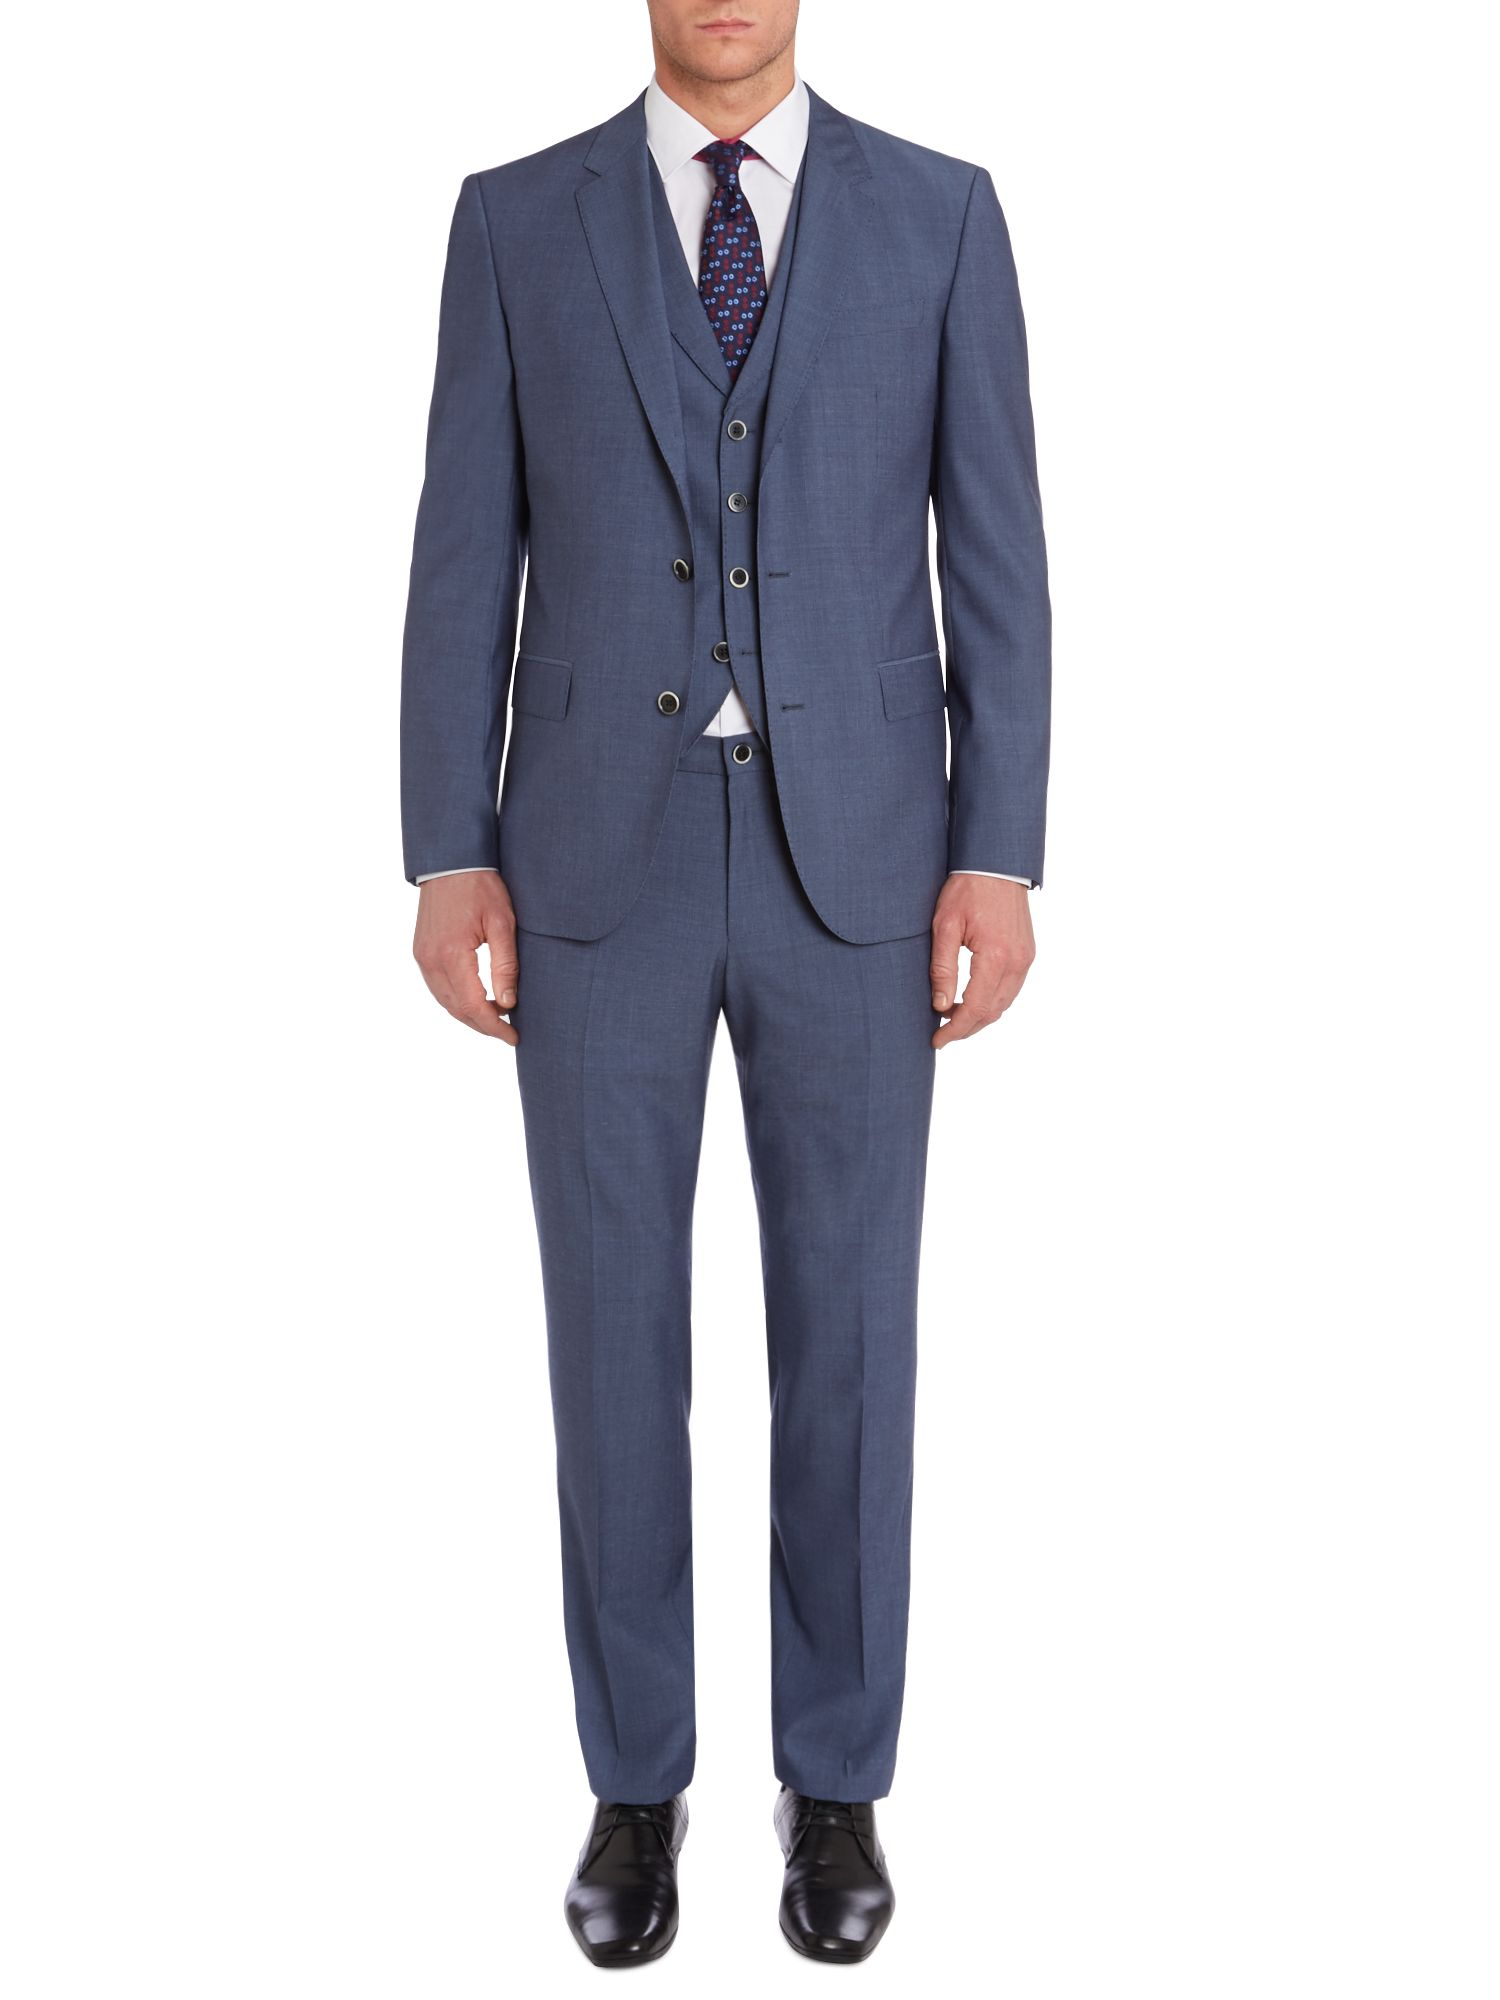 Hendry Fly three piece suit with lapel waistcoat